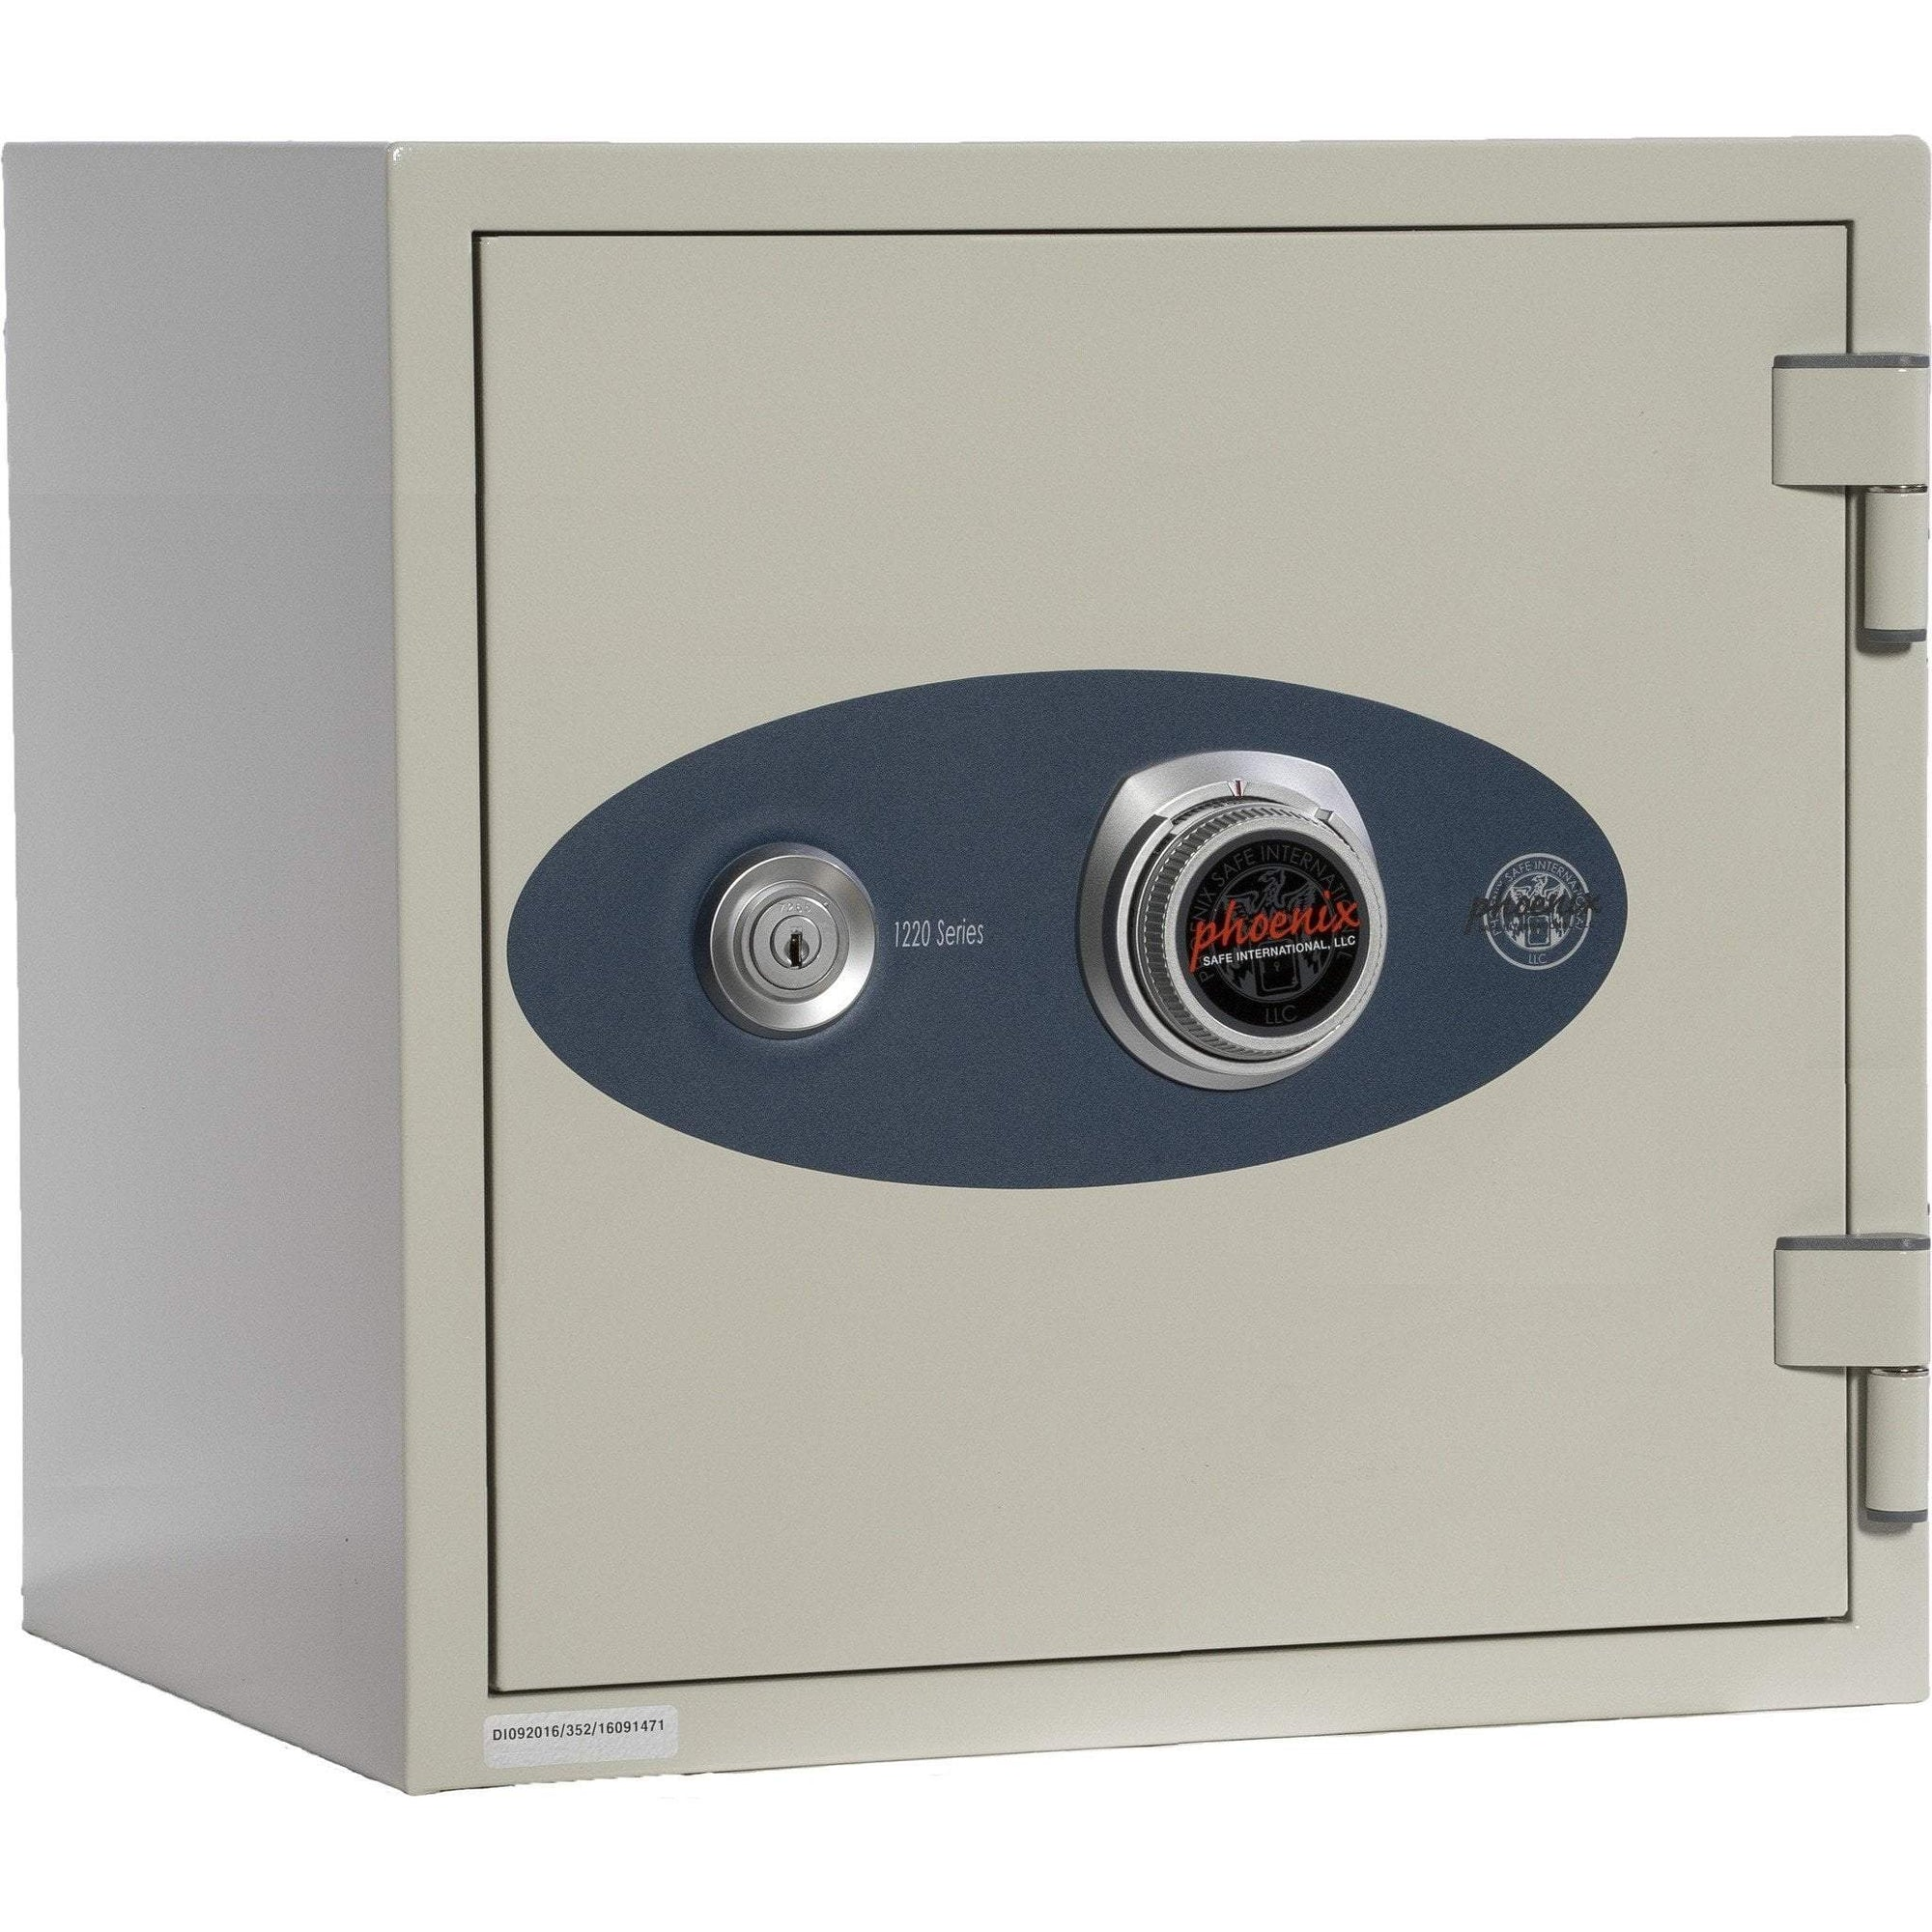 Phoenix 1222 Olympian Key and Combination Dual Control Fireproof Safe 0.87 cu ft Armadillo Safe and Vault